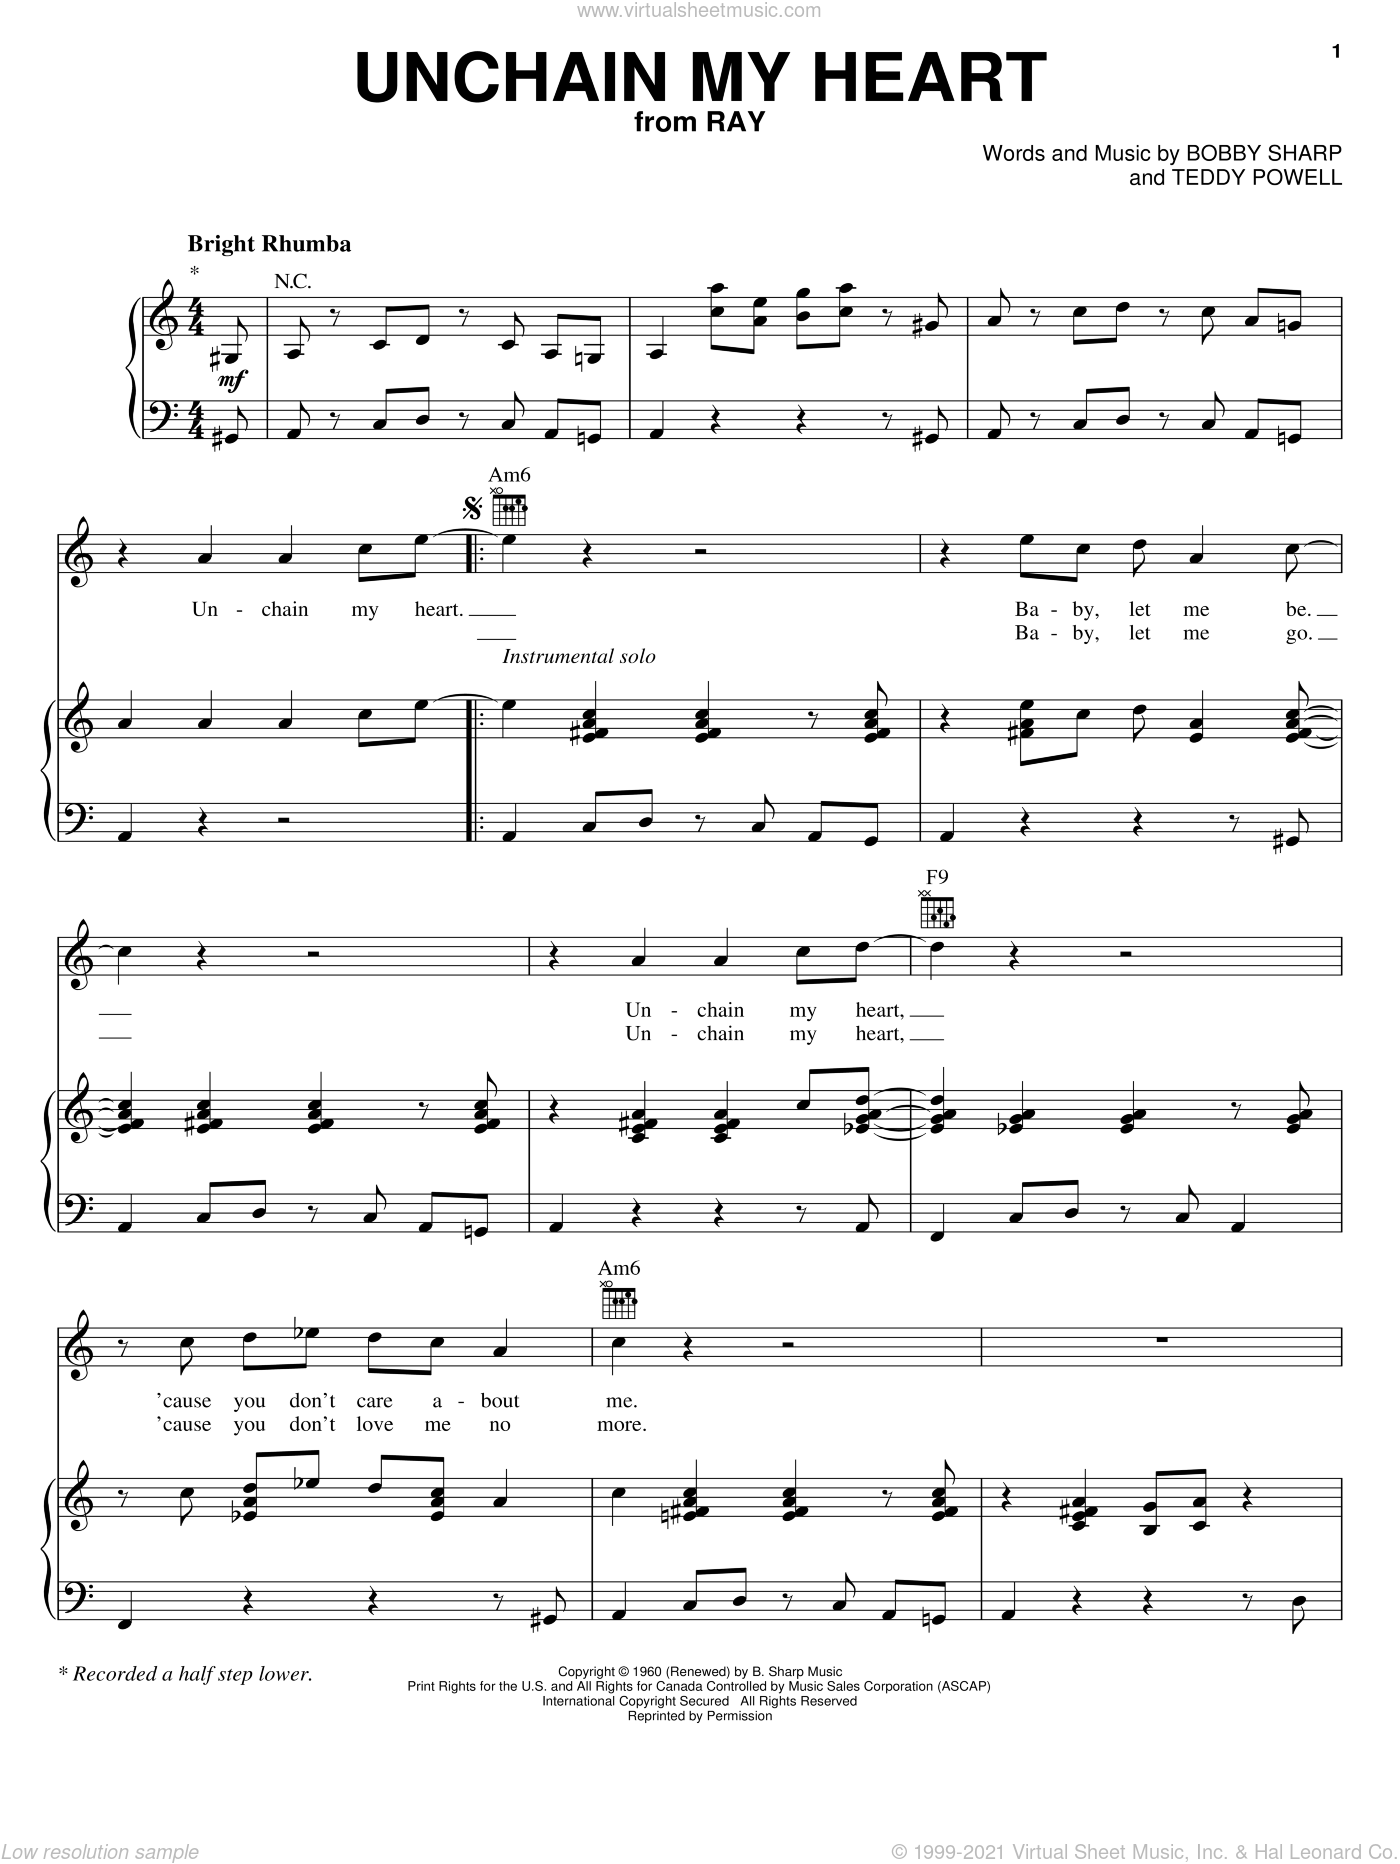 Unchain My Heart sheet music for voice, piano or guitar by Ray Charles, Ray (Movie), Bobby Sharp and Teddy Powell, intermediate skill level